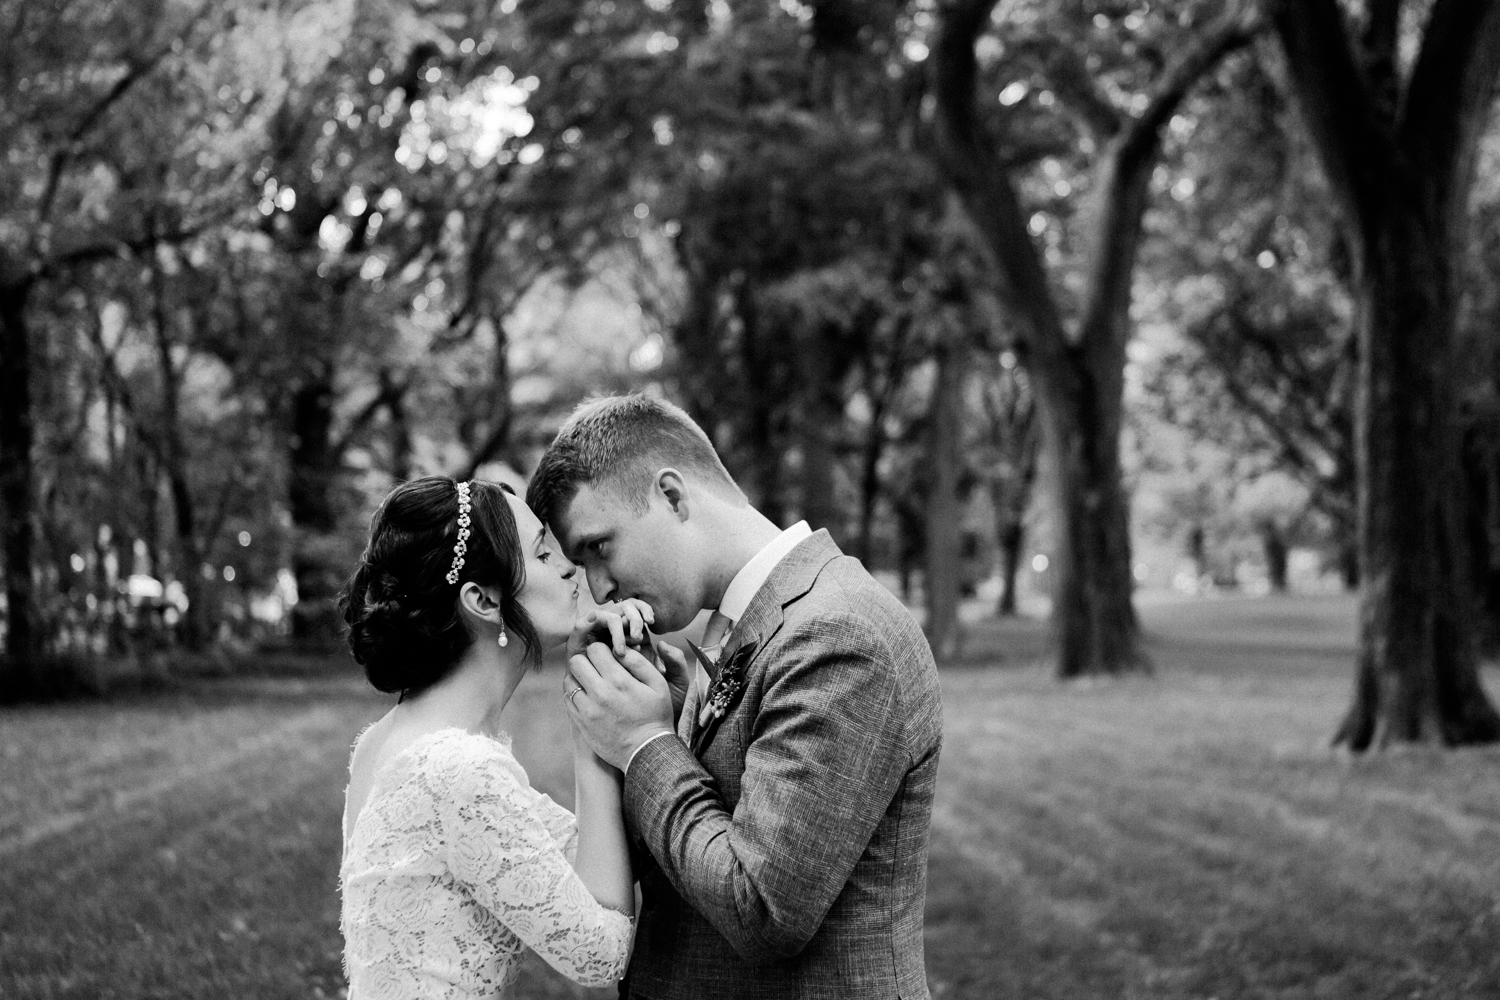 lissie_loomis_photo_nyc_brooklyn_wedding_engagement_photographer_photography-72.JPG